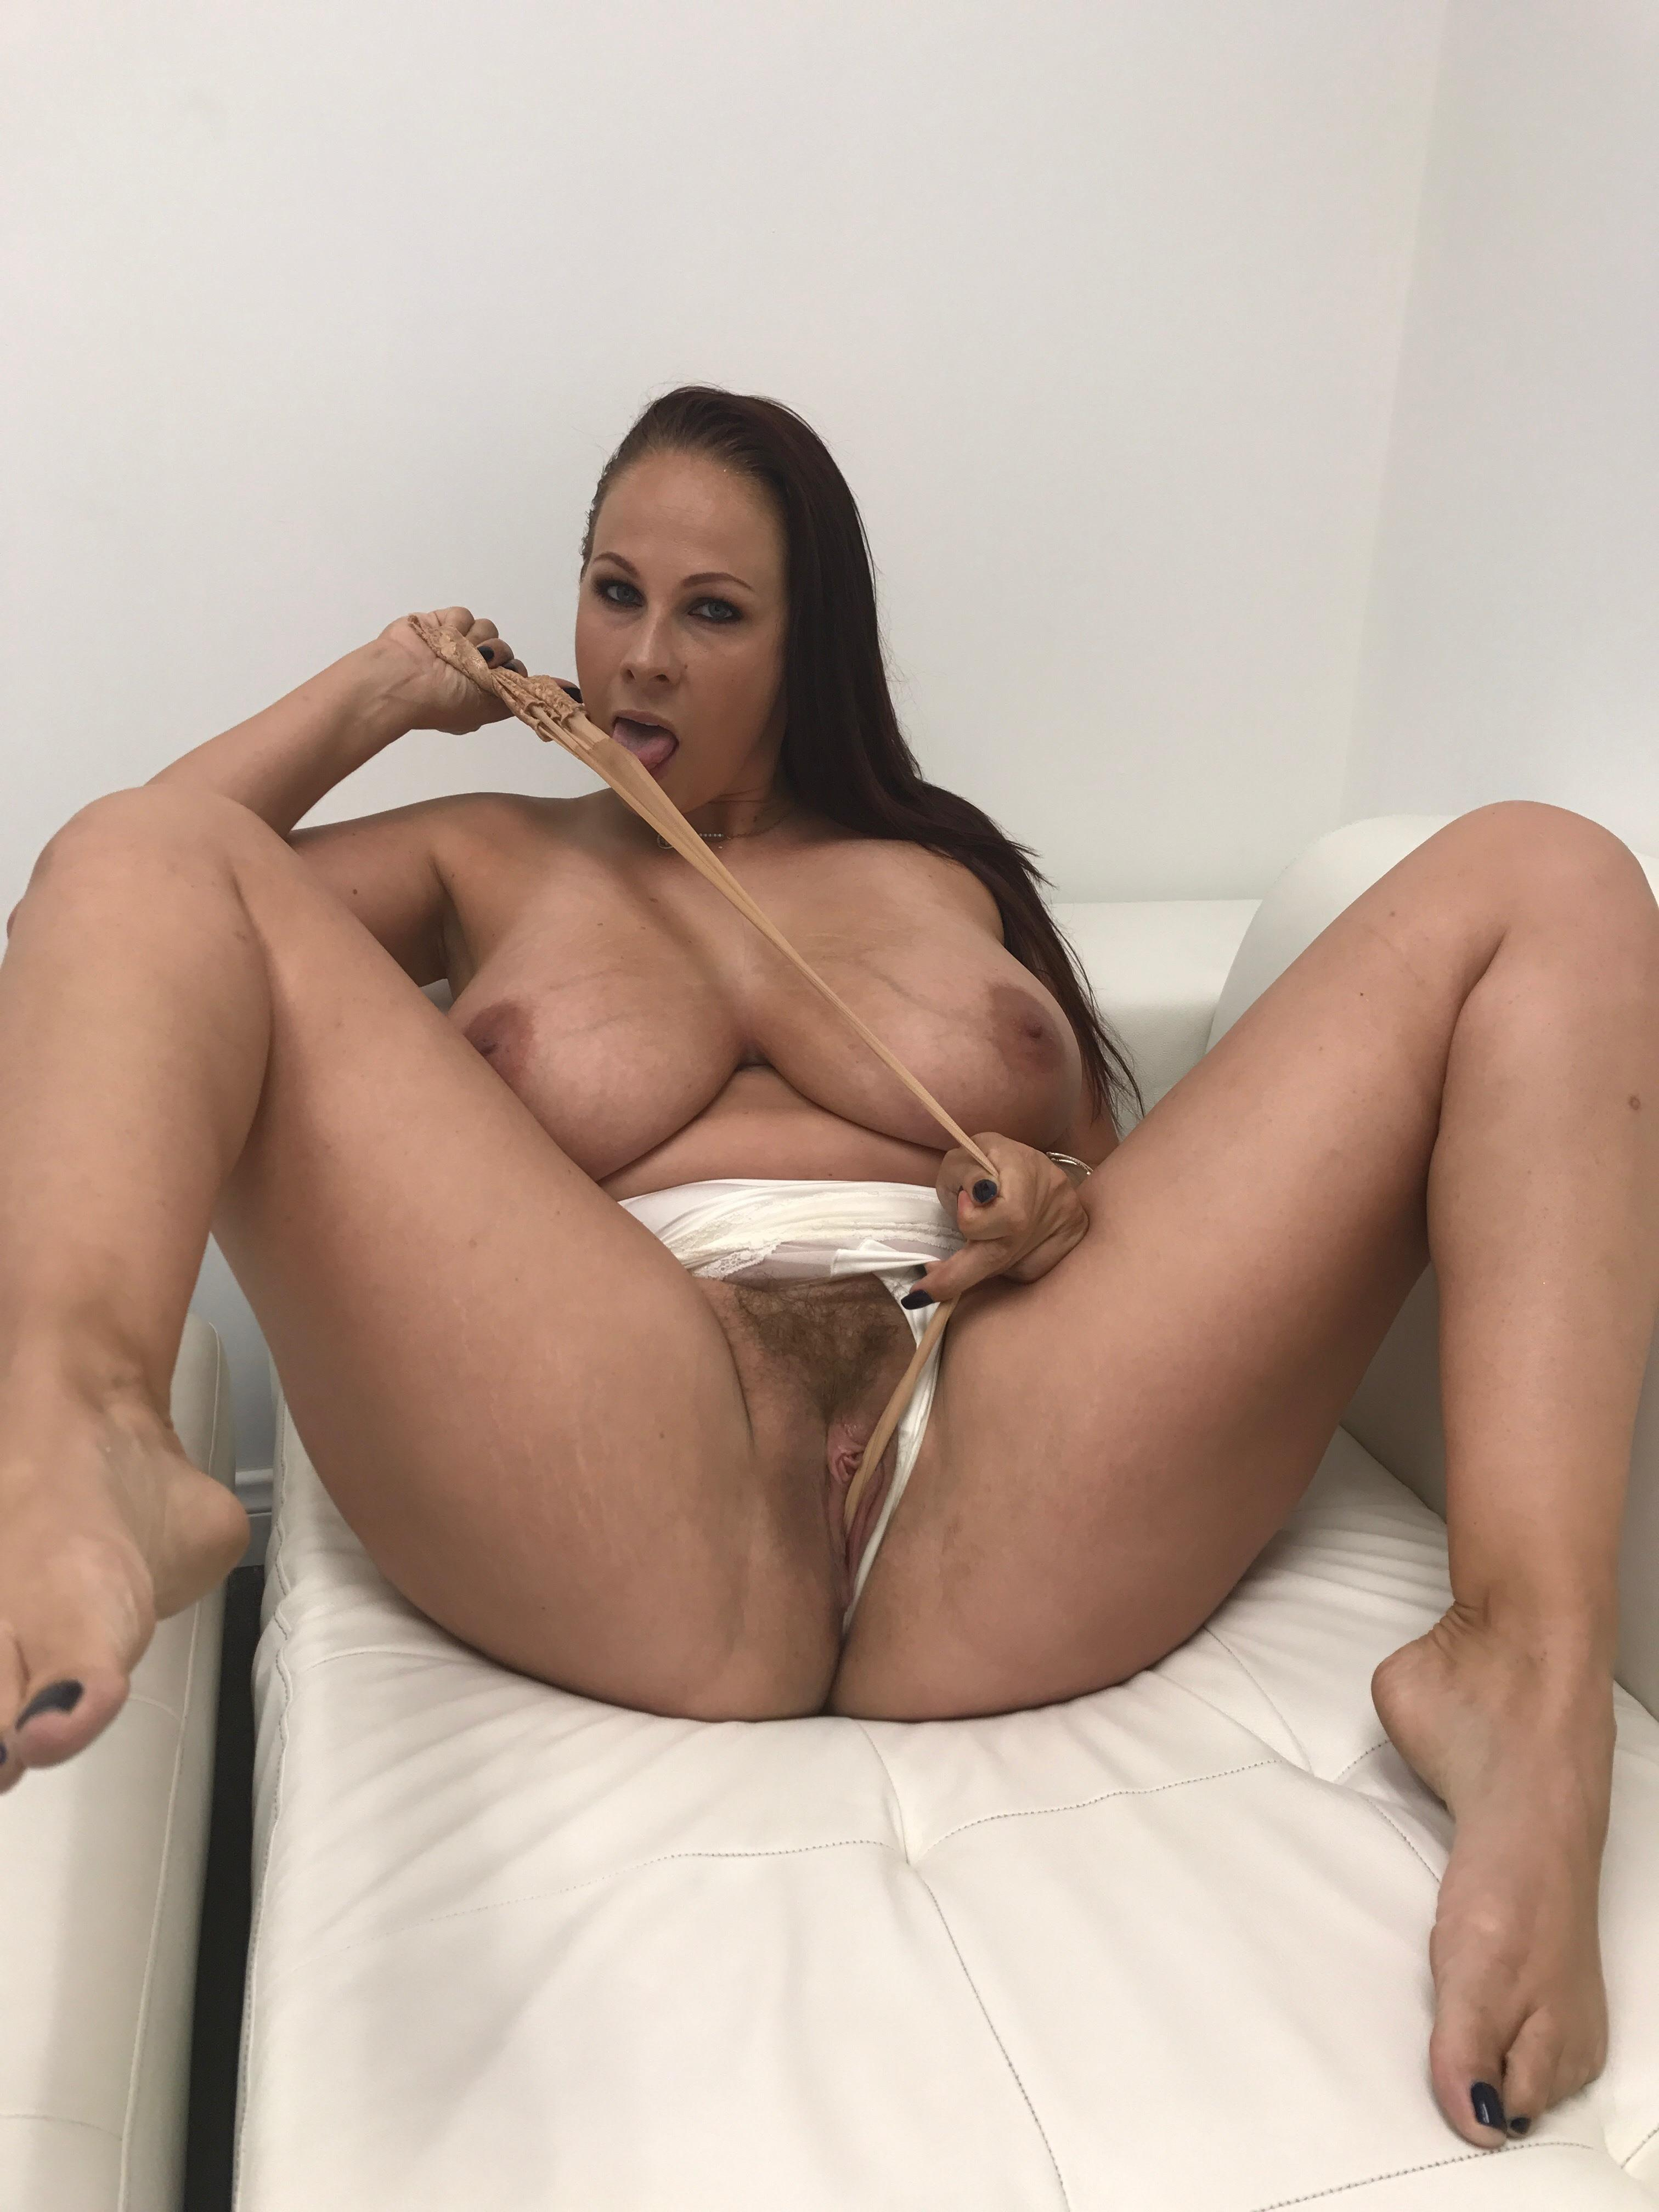 Gianna michaels hairy nude pussy